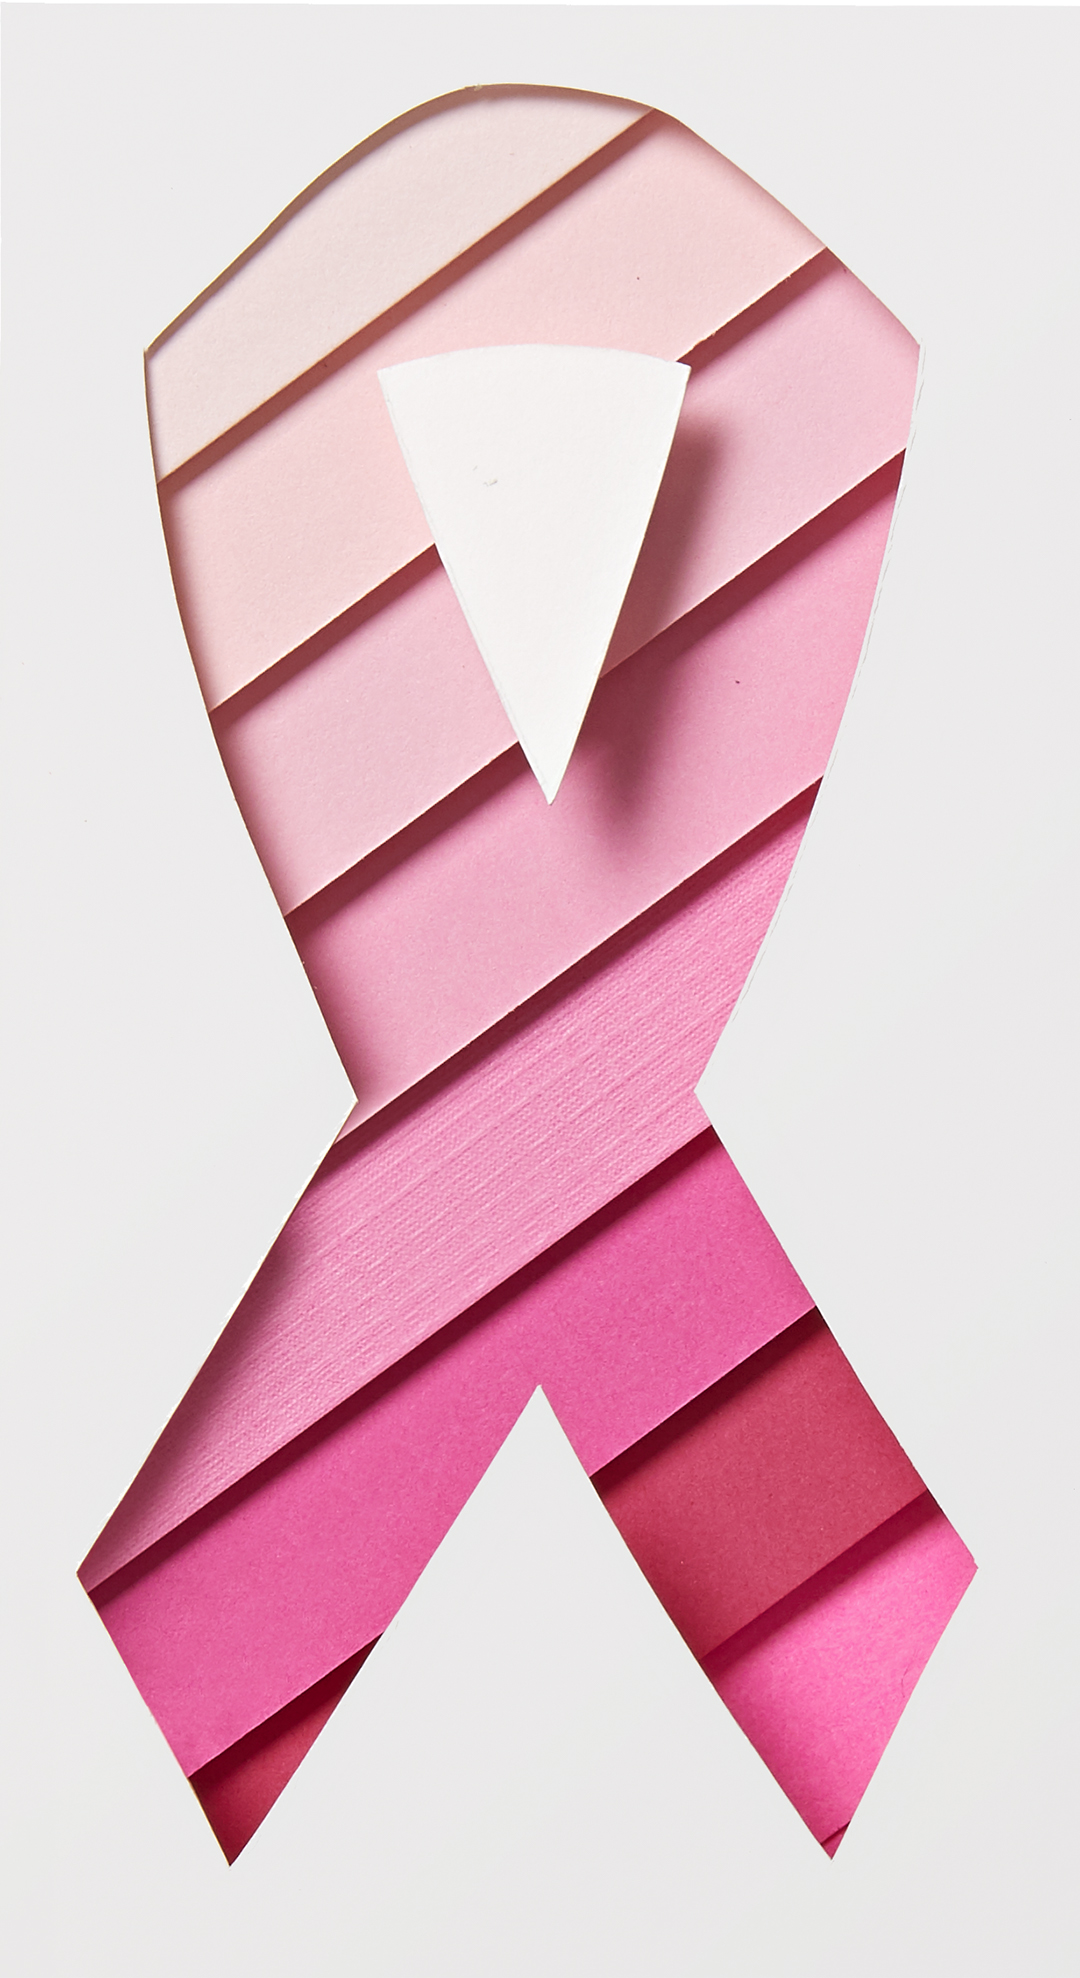 breast cancer ribbon design made of paper